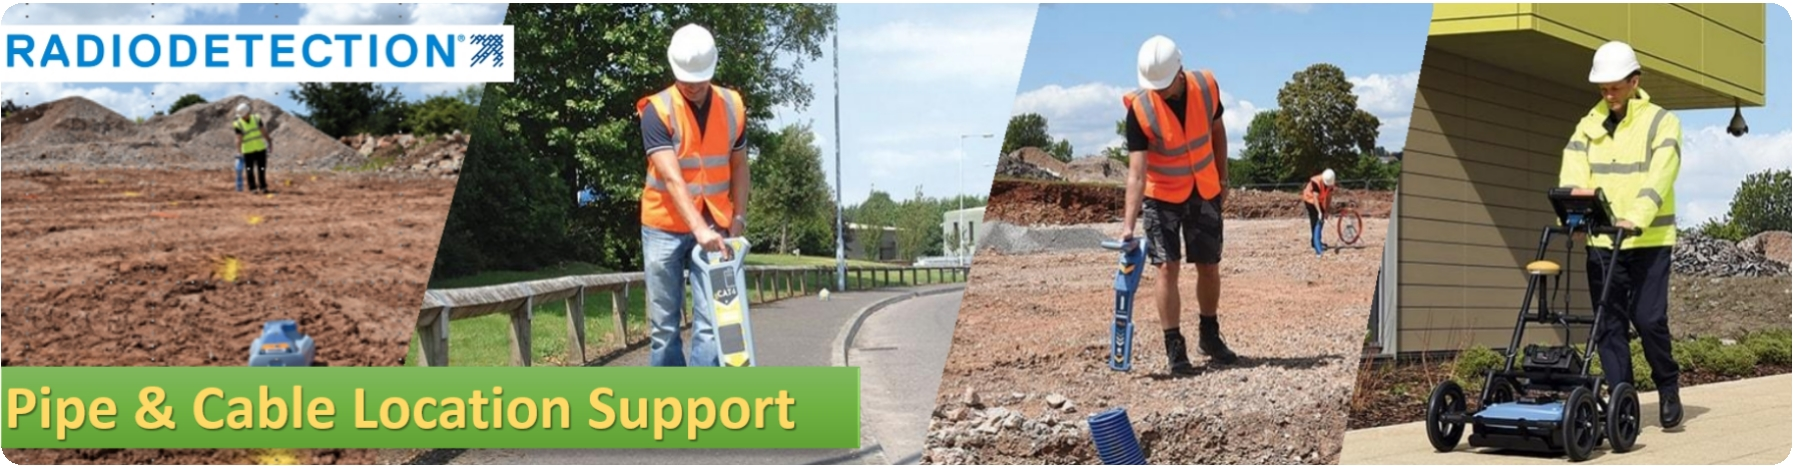 Radiodetection Pipe & Cable Locator Support